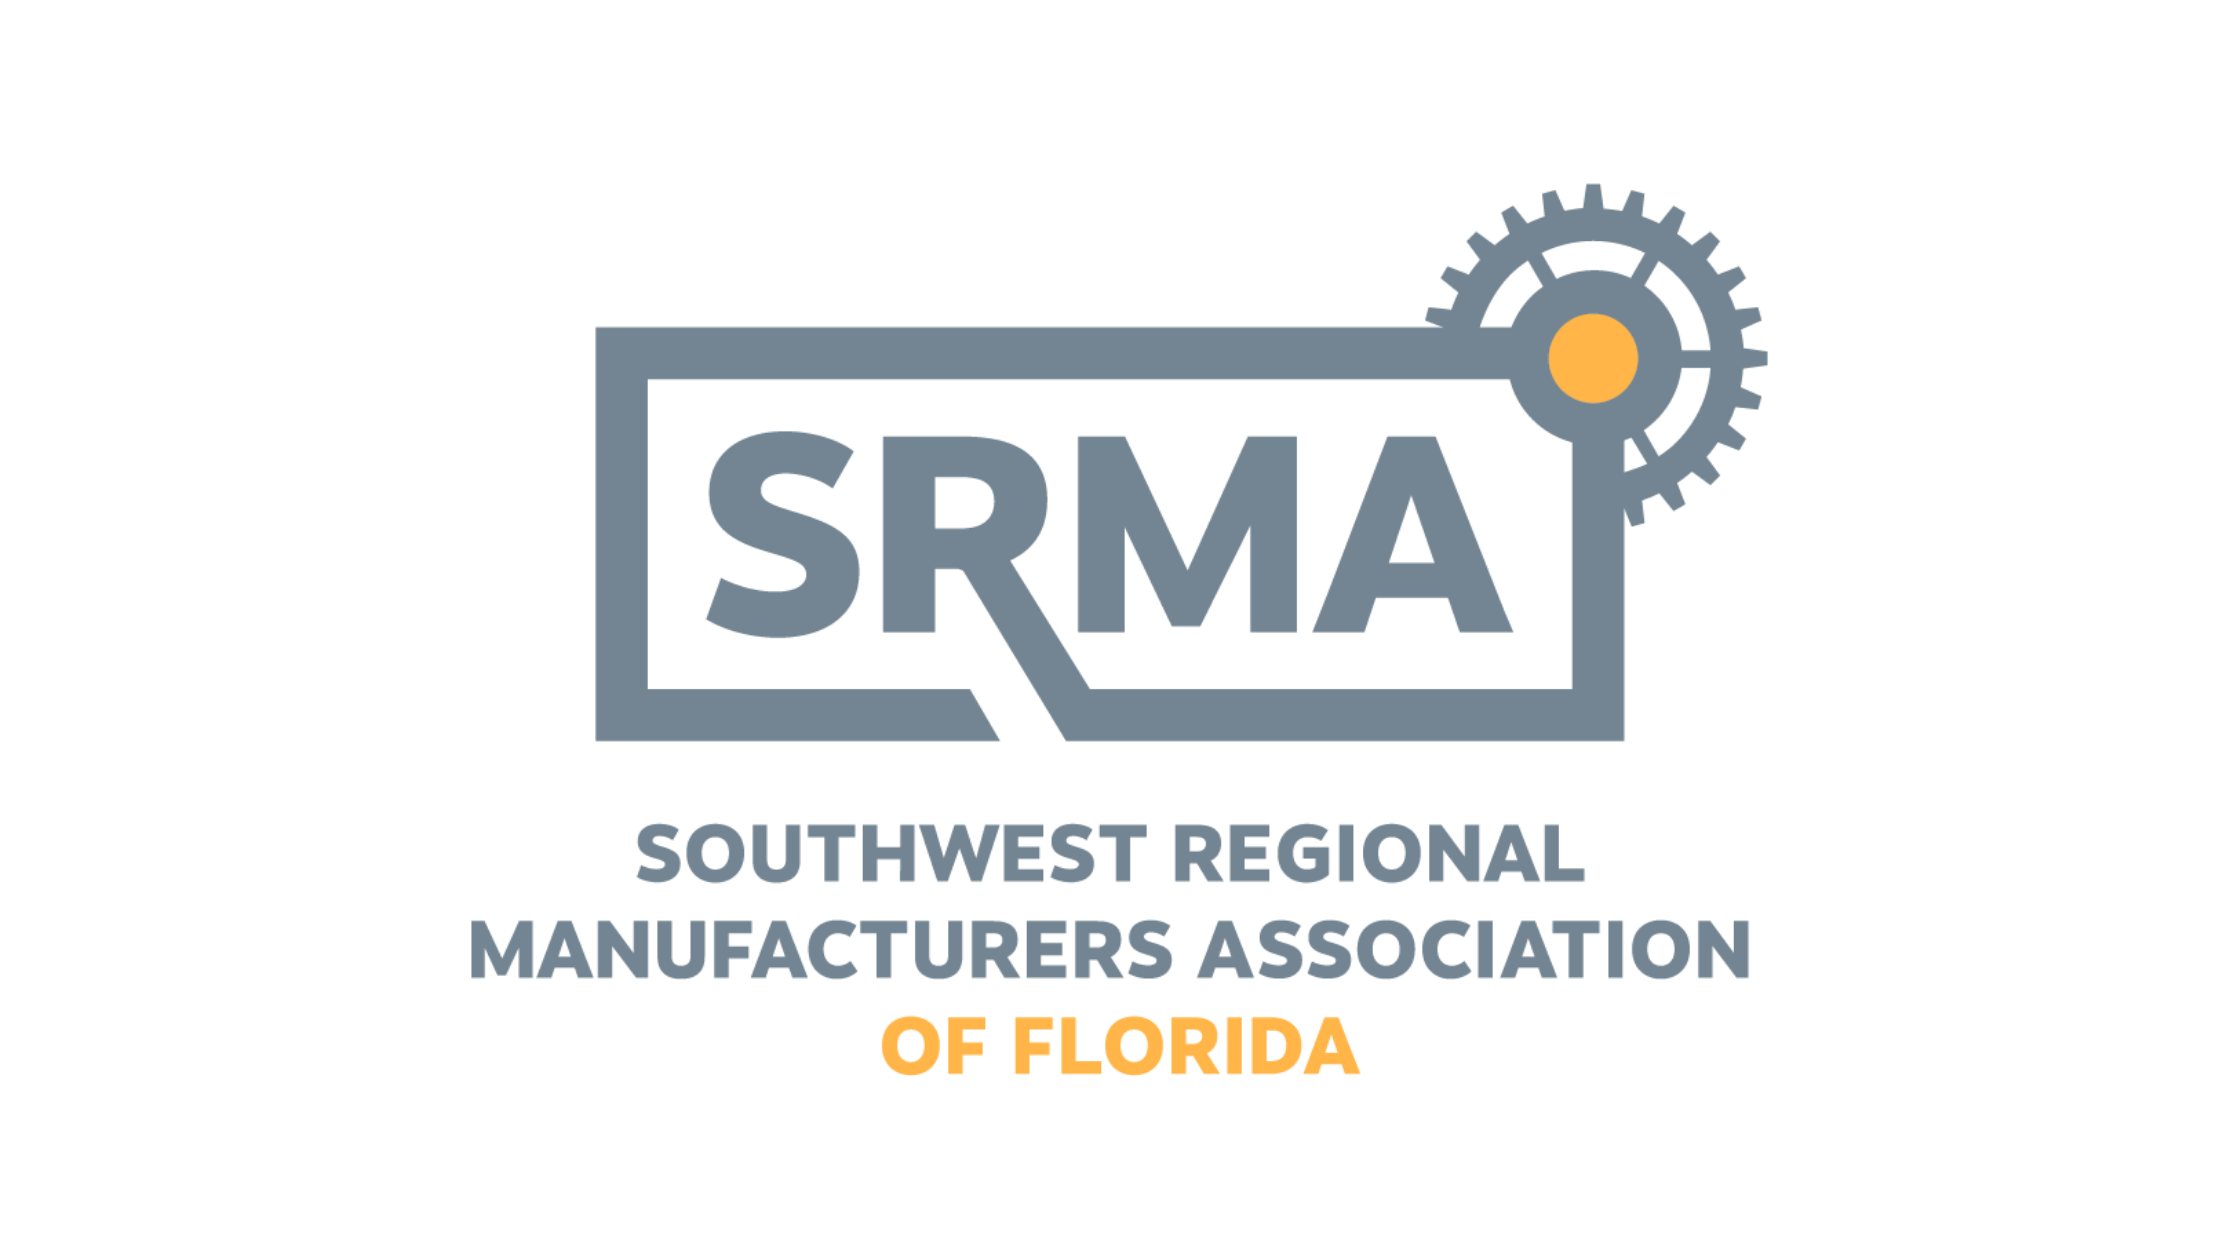 SRMA to host panel discussion to help businesses recover, restore and reboot